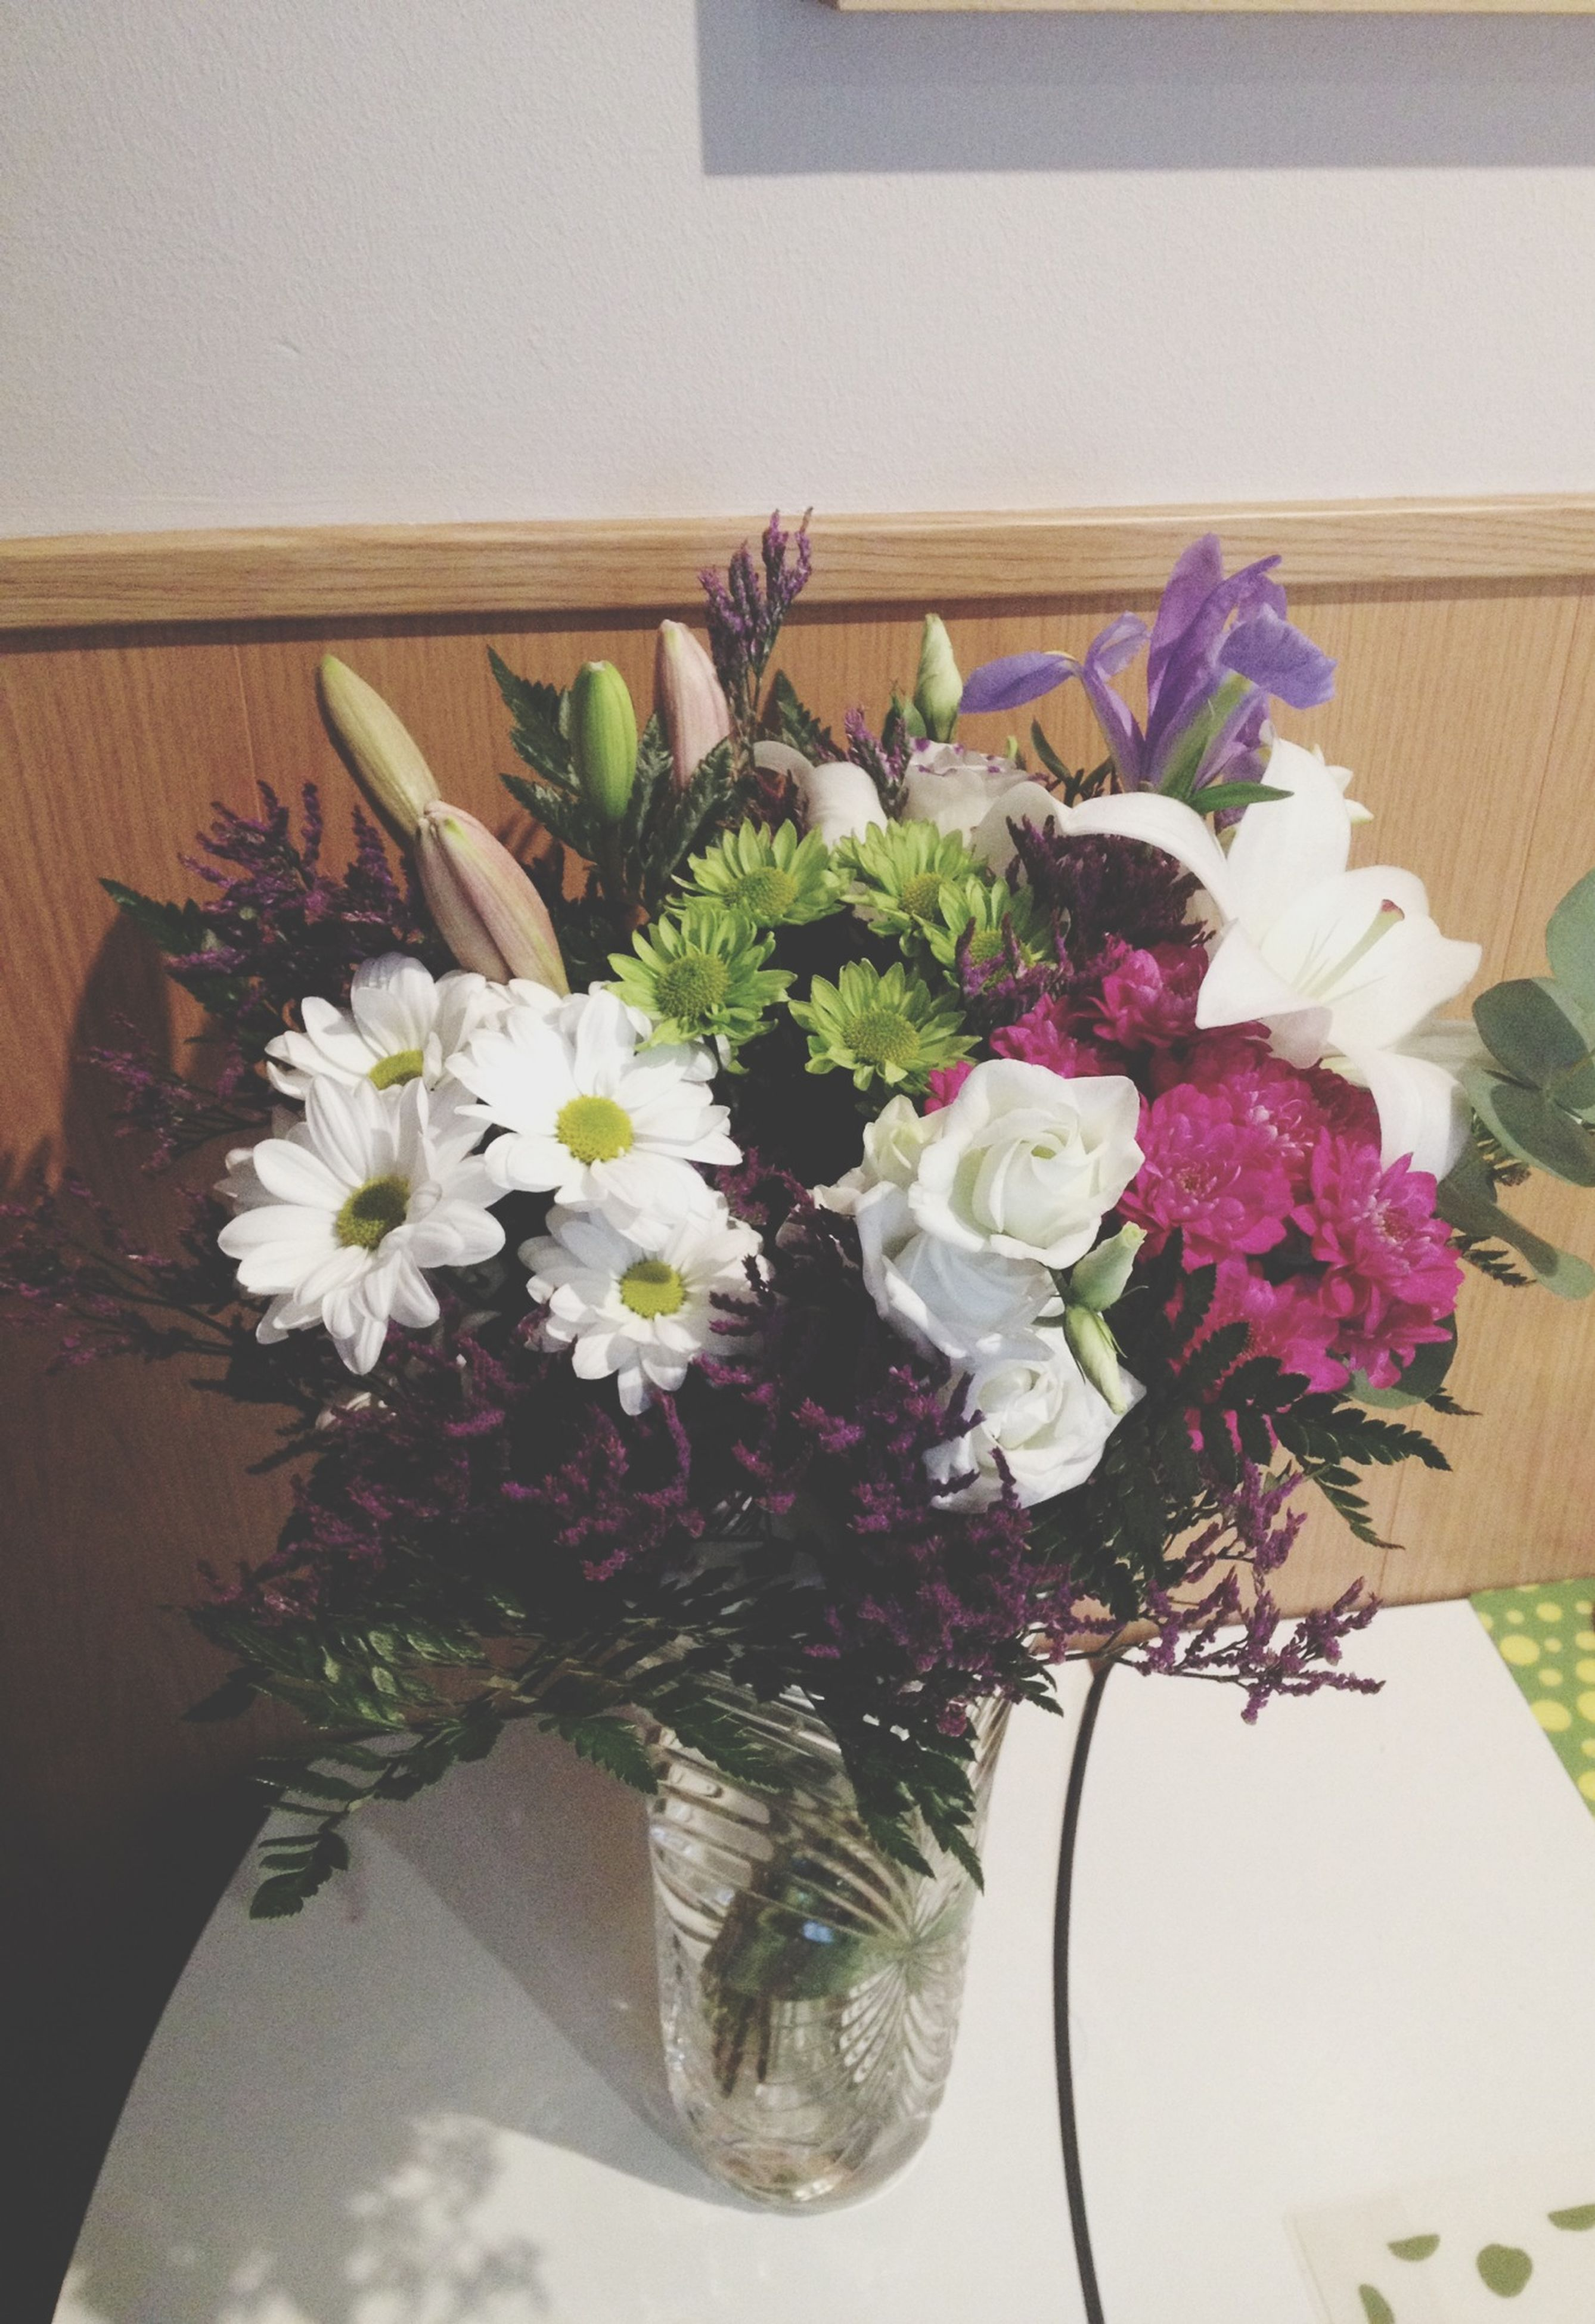 flower, indoors, vase, freshness, fragility, petal, decoration, bouquet, flower arrangement, bunch of flowers, flower head, potted plant, white color, table, home interior, growth, plant, beauty in nature, flower pot, close-up